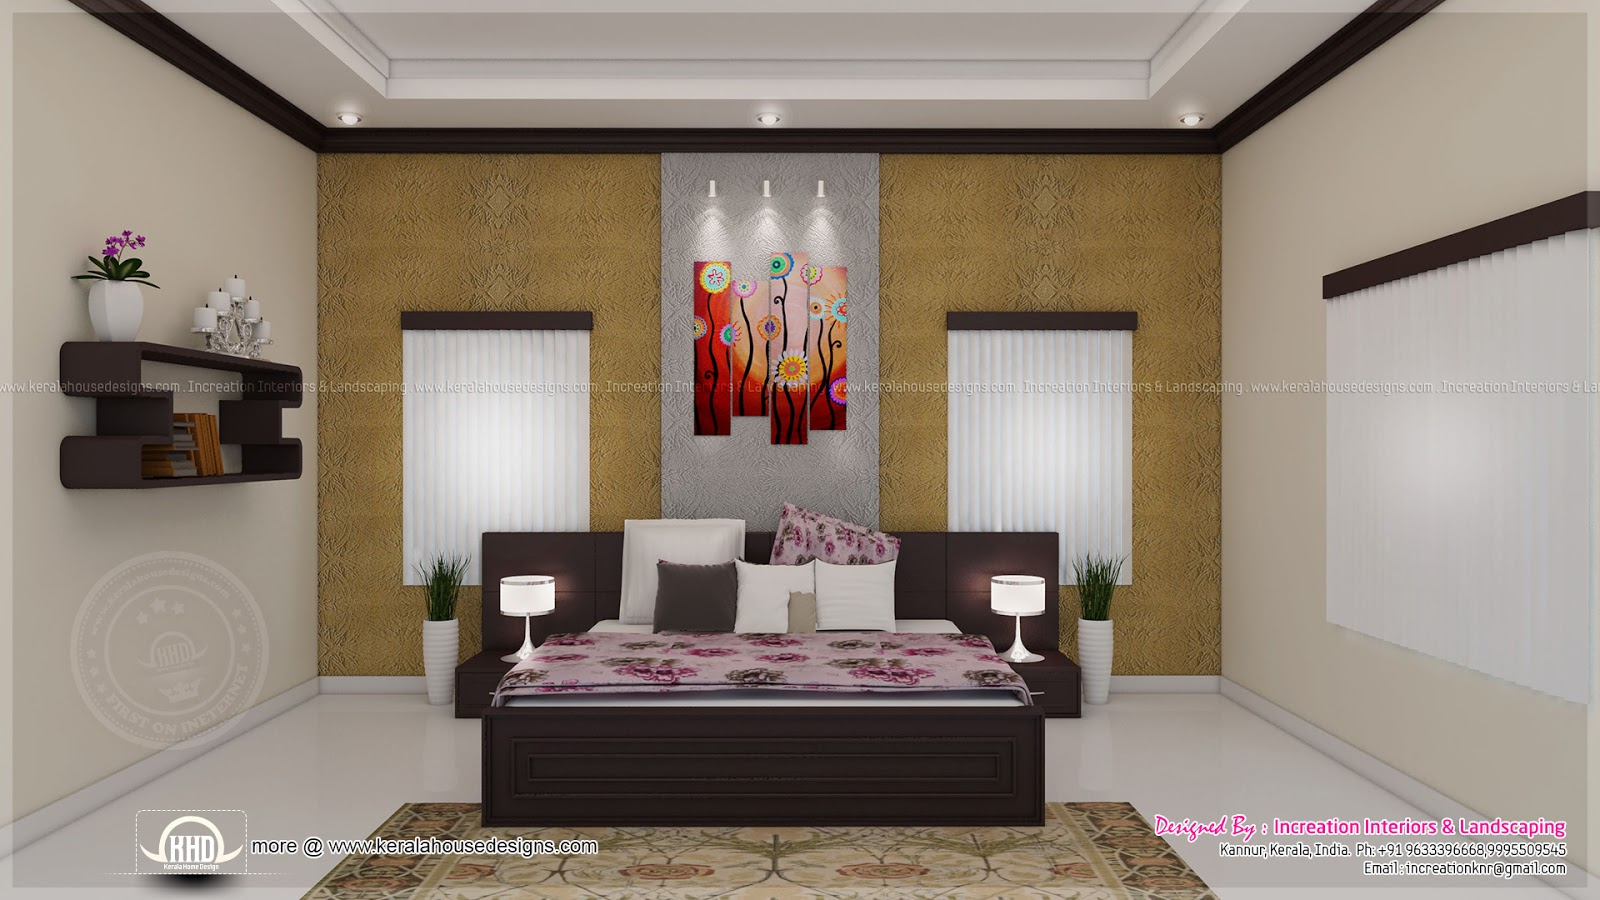 House interior ideas in 3d rendering kerala home design for Mansion interior design